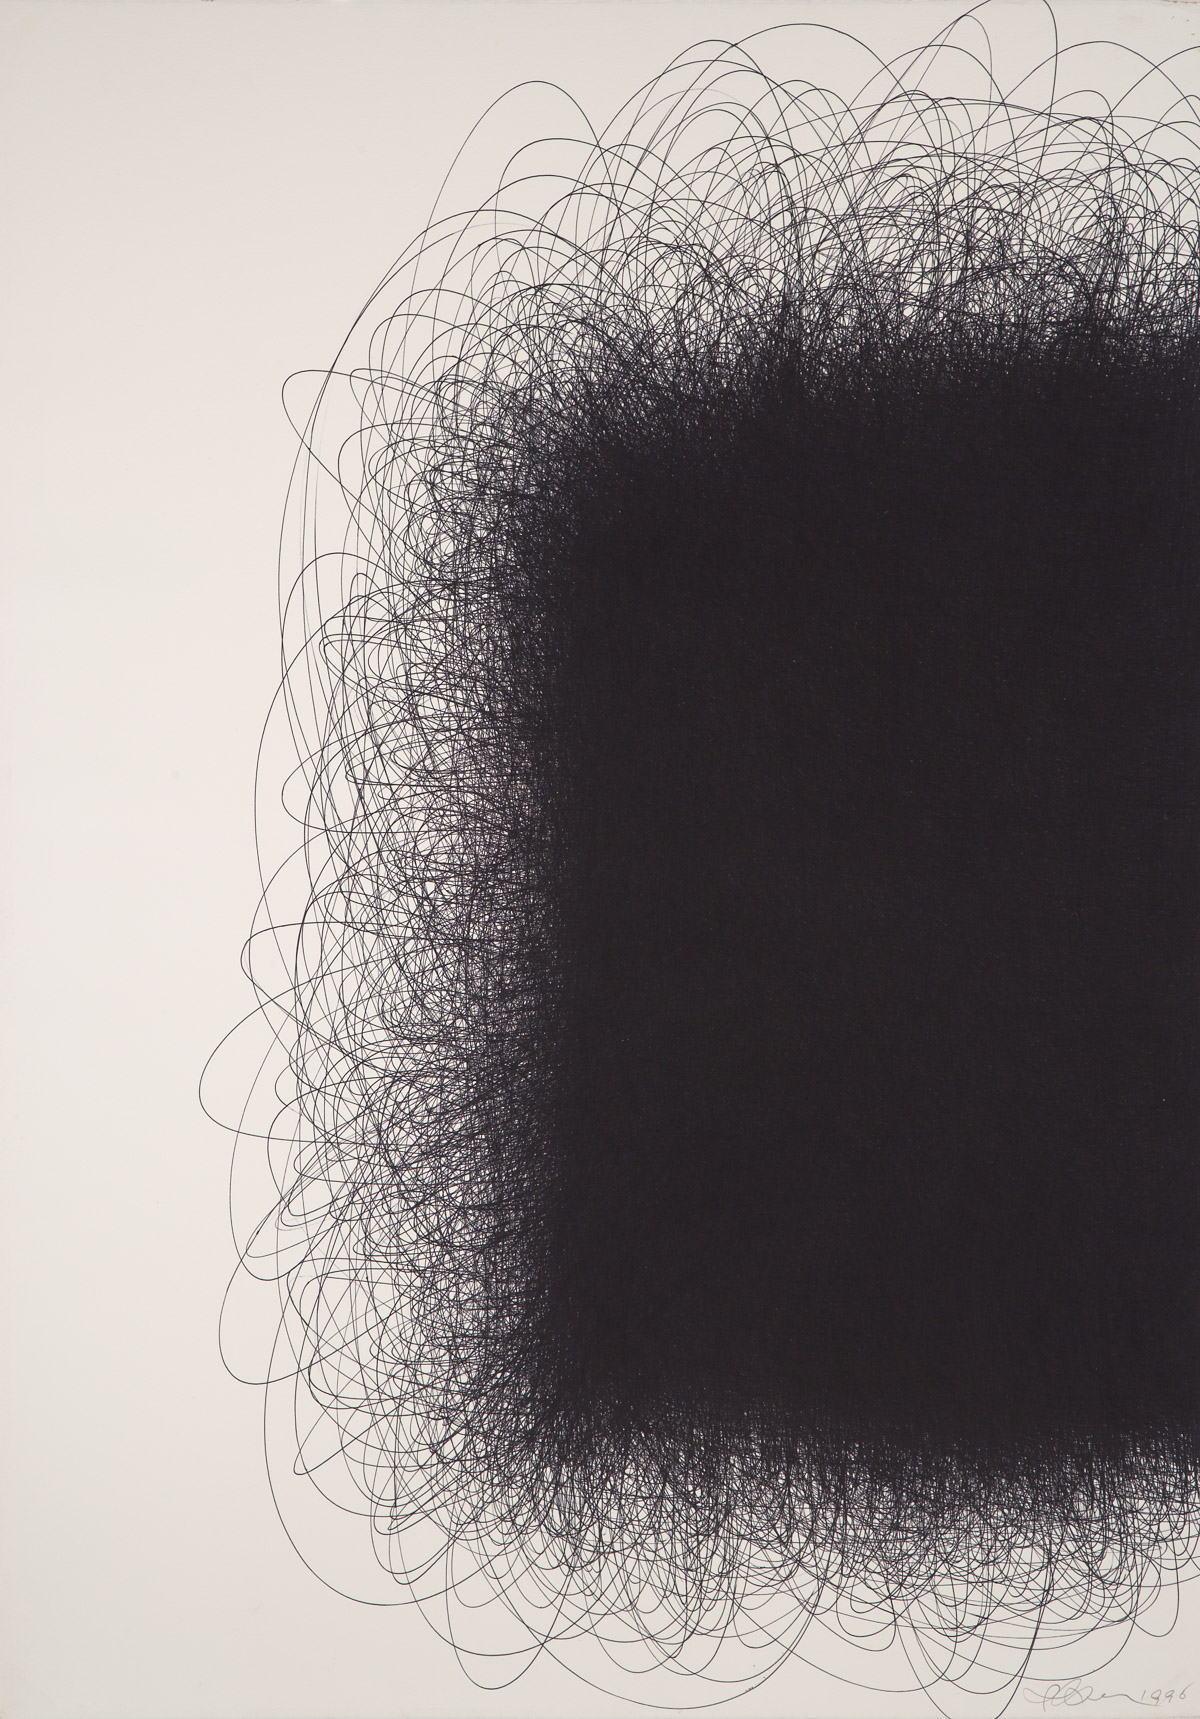 IL LEE, Untitled 967, 1996, ballpoint ink on paper,42 x 29 3/4 inches (106.7 x 75.6 cm)